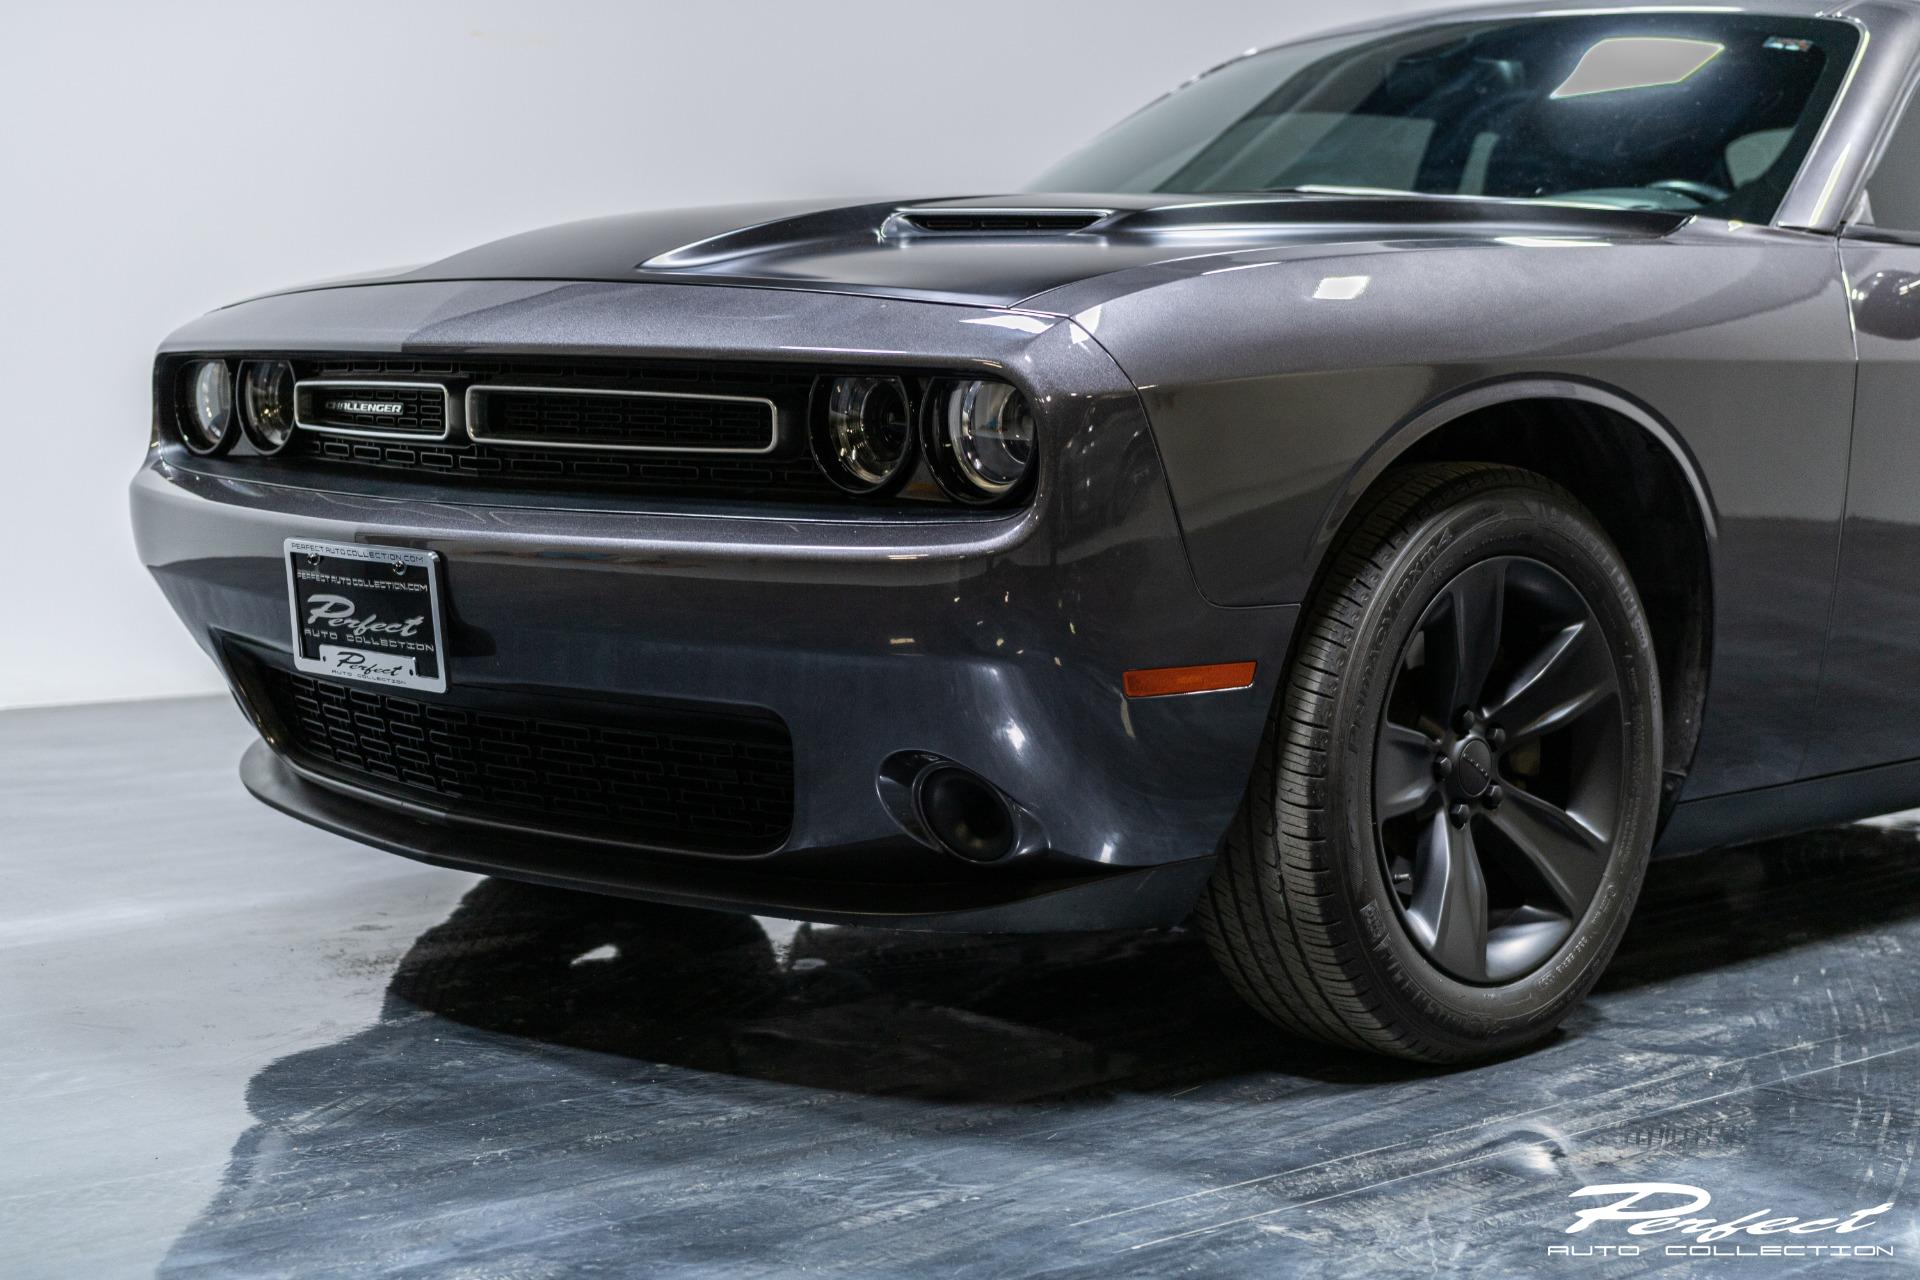 Used 2016 Dodge Challenger SXT for sale Sold at Perfect Auto Collection in Akron OH 44310 3